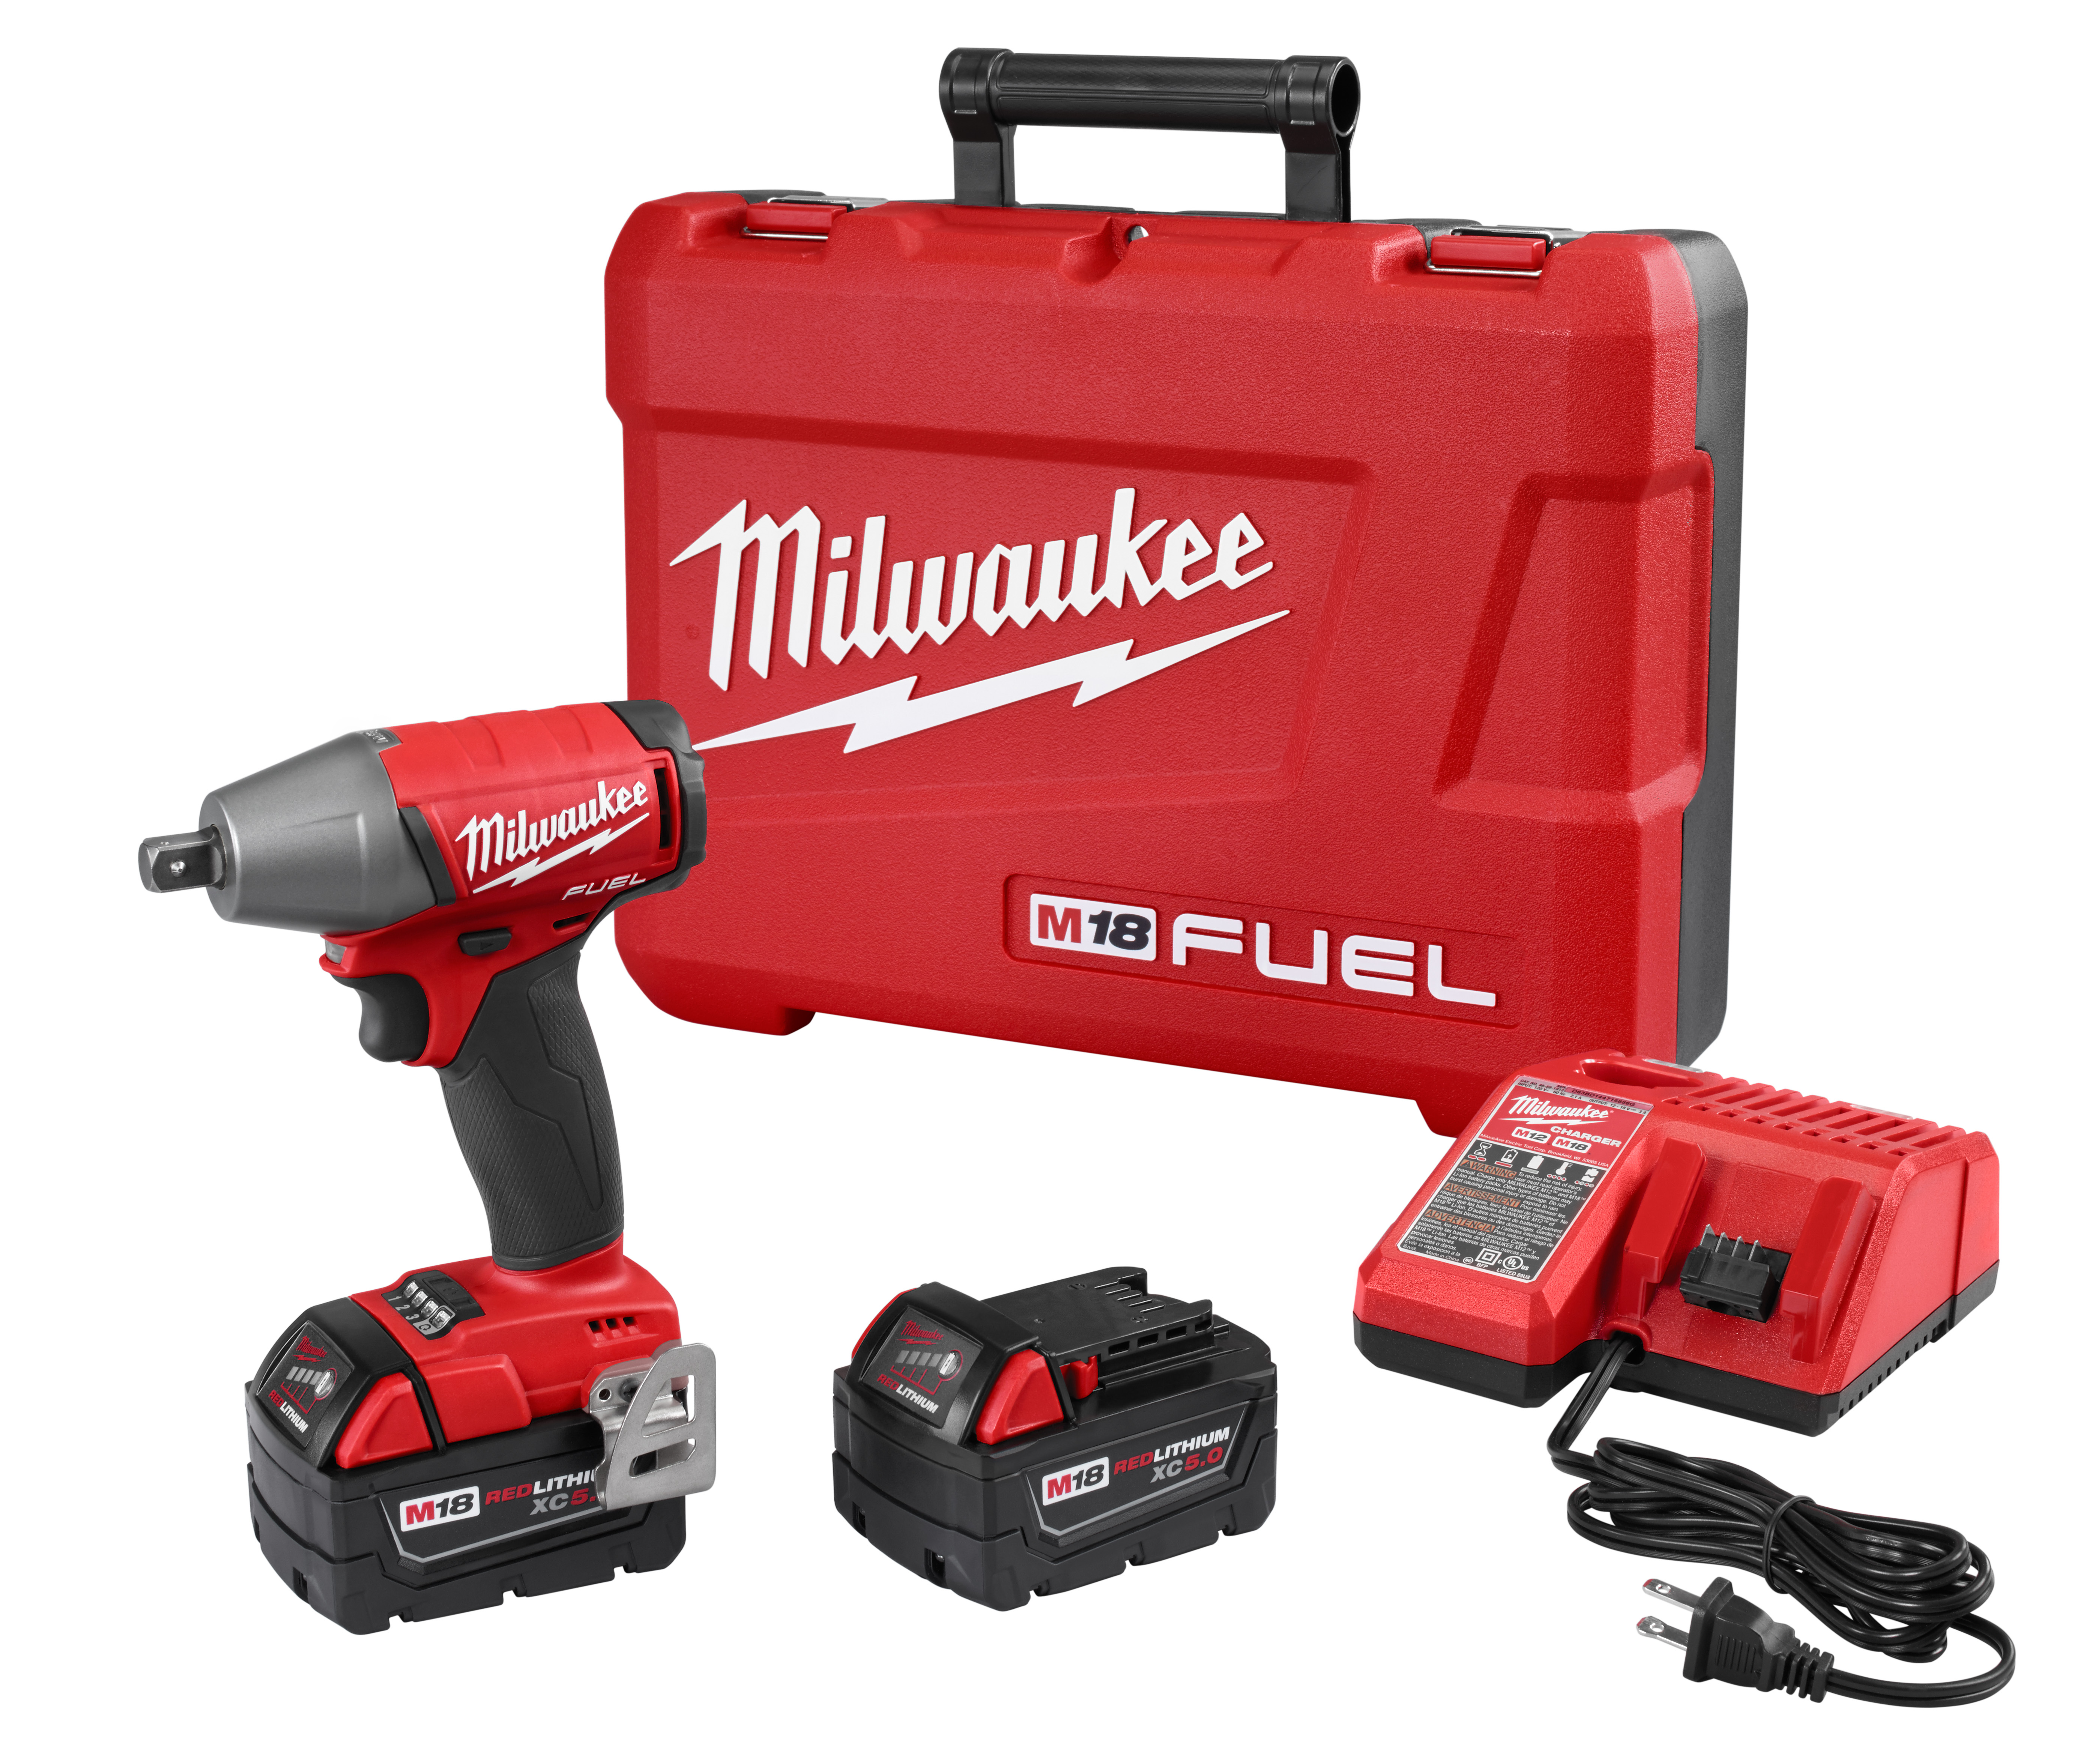 Milwaukee® M18™ FUEL™ 2755-22 Brushless Compact Impact Wrench Kit With Pin Detent, 1/2 in Straight Drive, 0 to 3200 bpm, 220 ft-lb Torque, 18 VDC, 6.1 in OAL